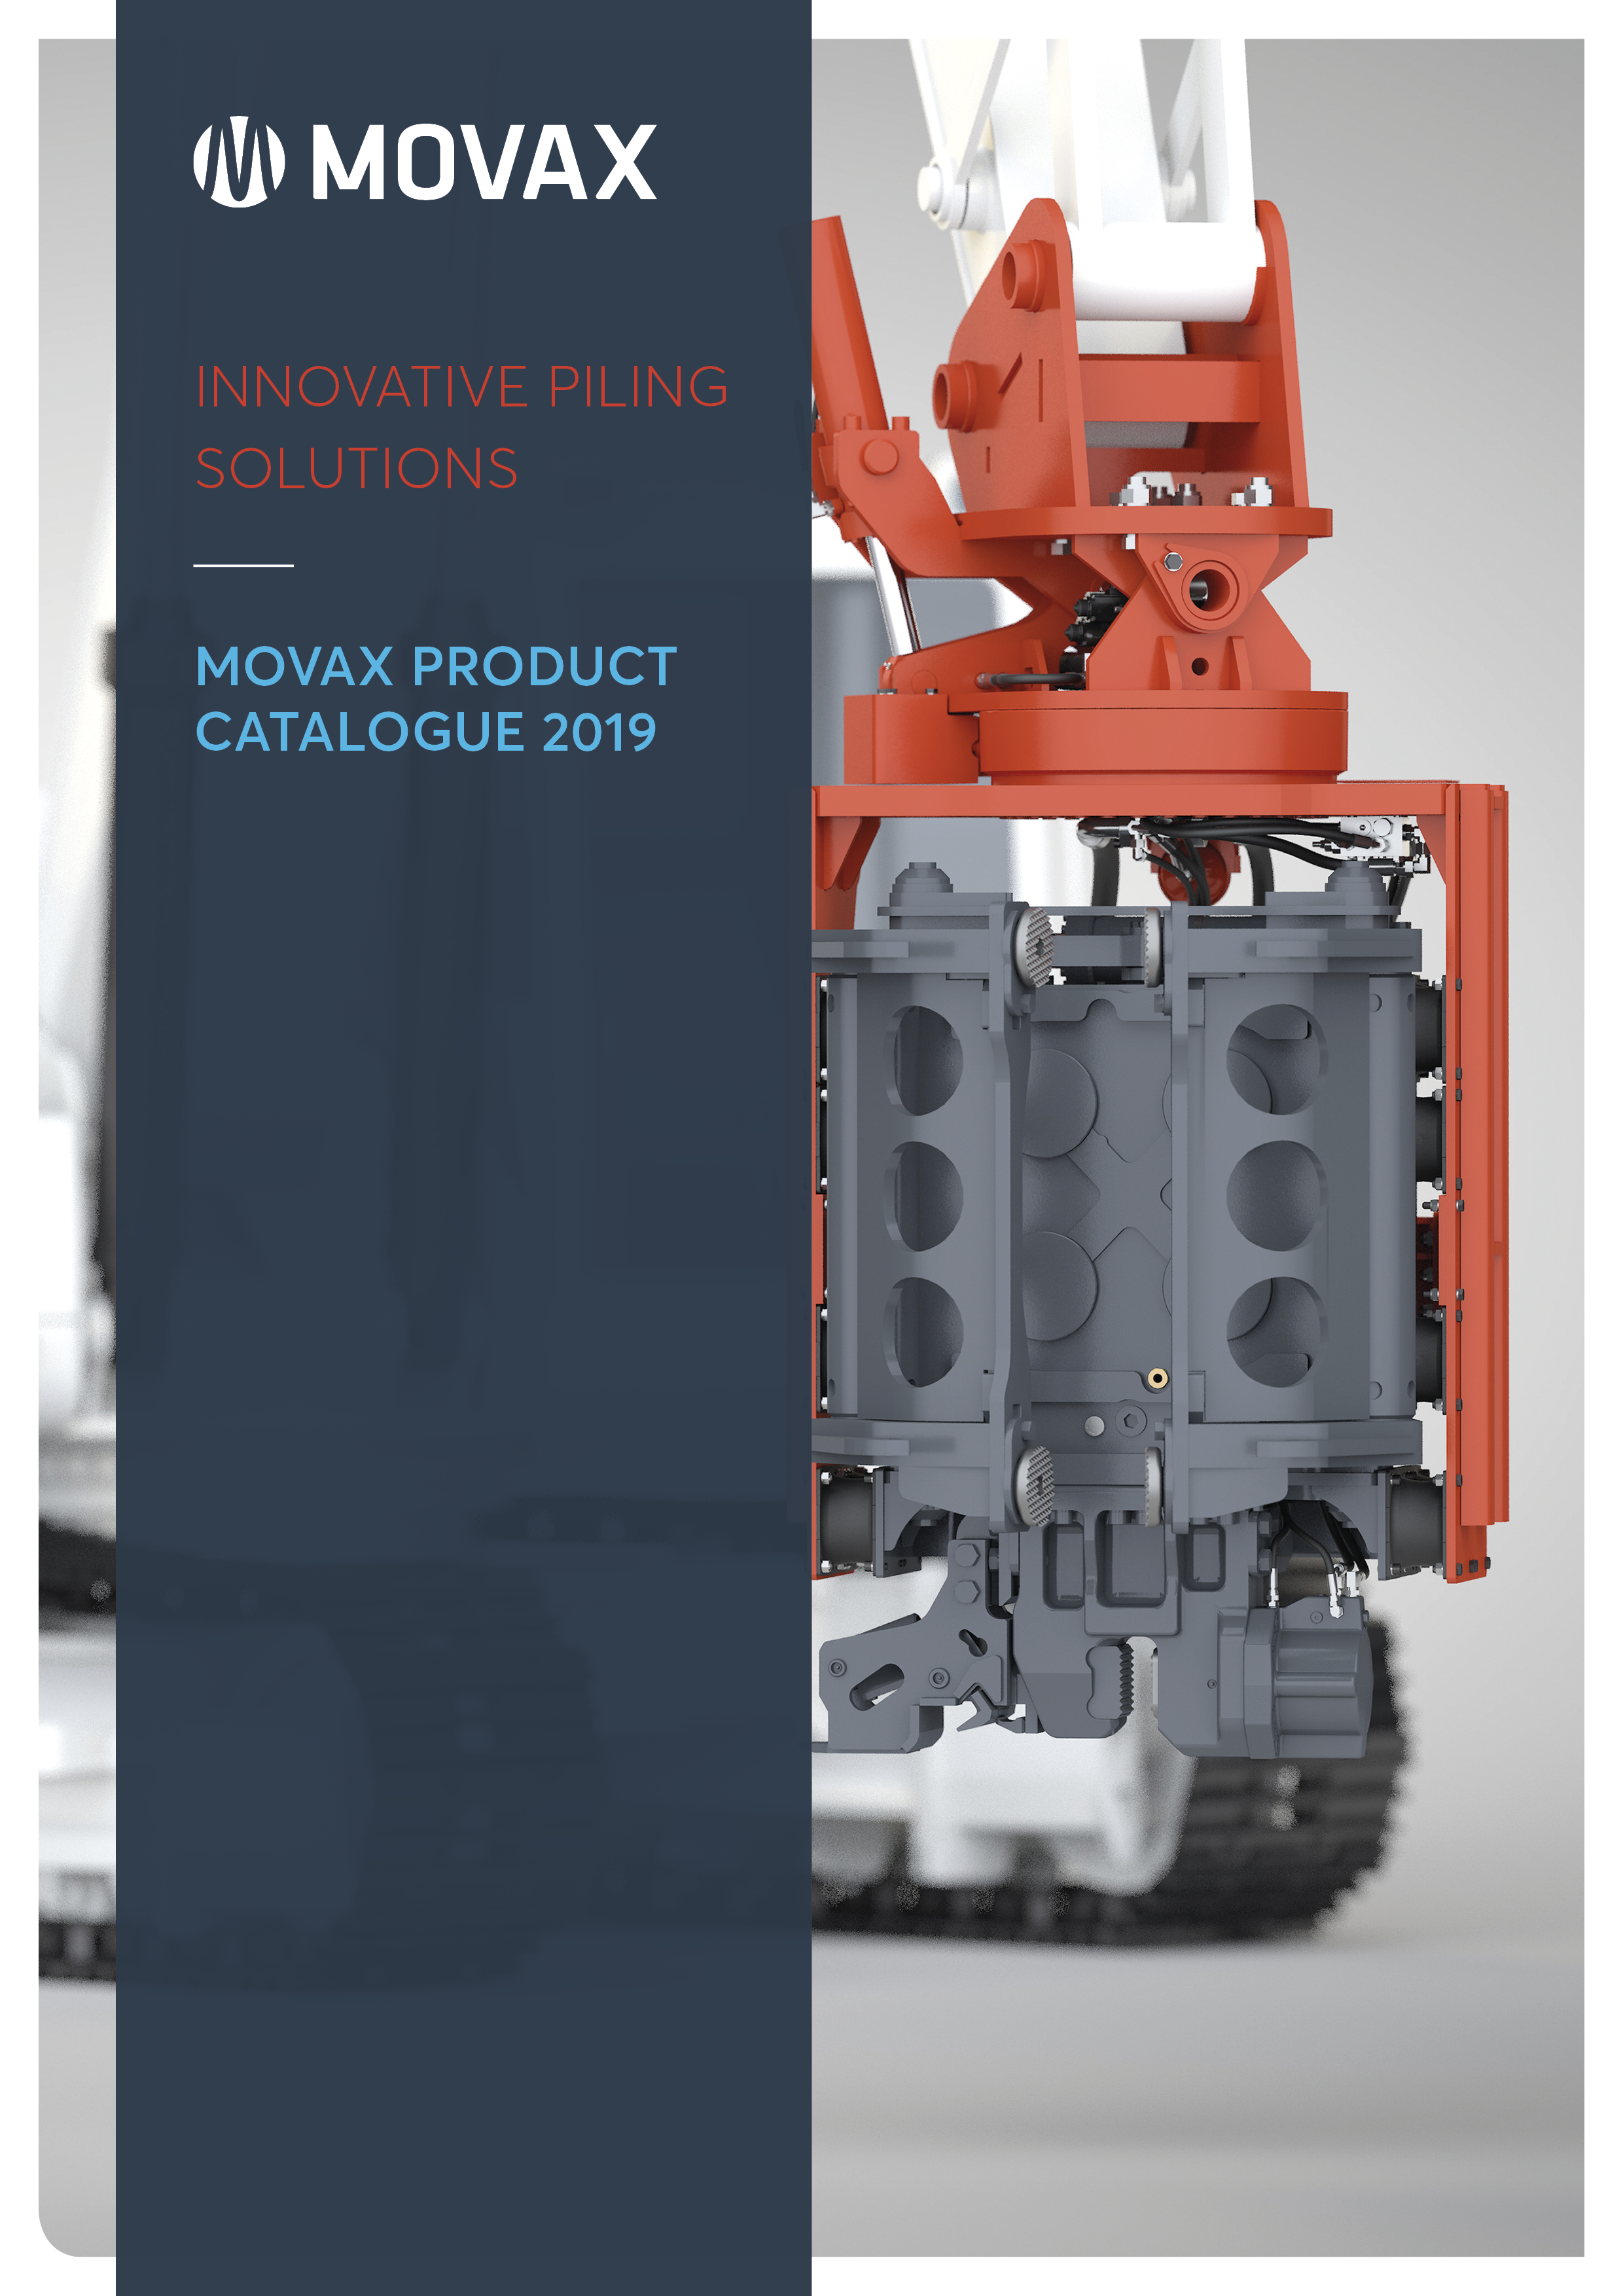 Movax Product Catalogue 2019